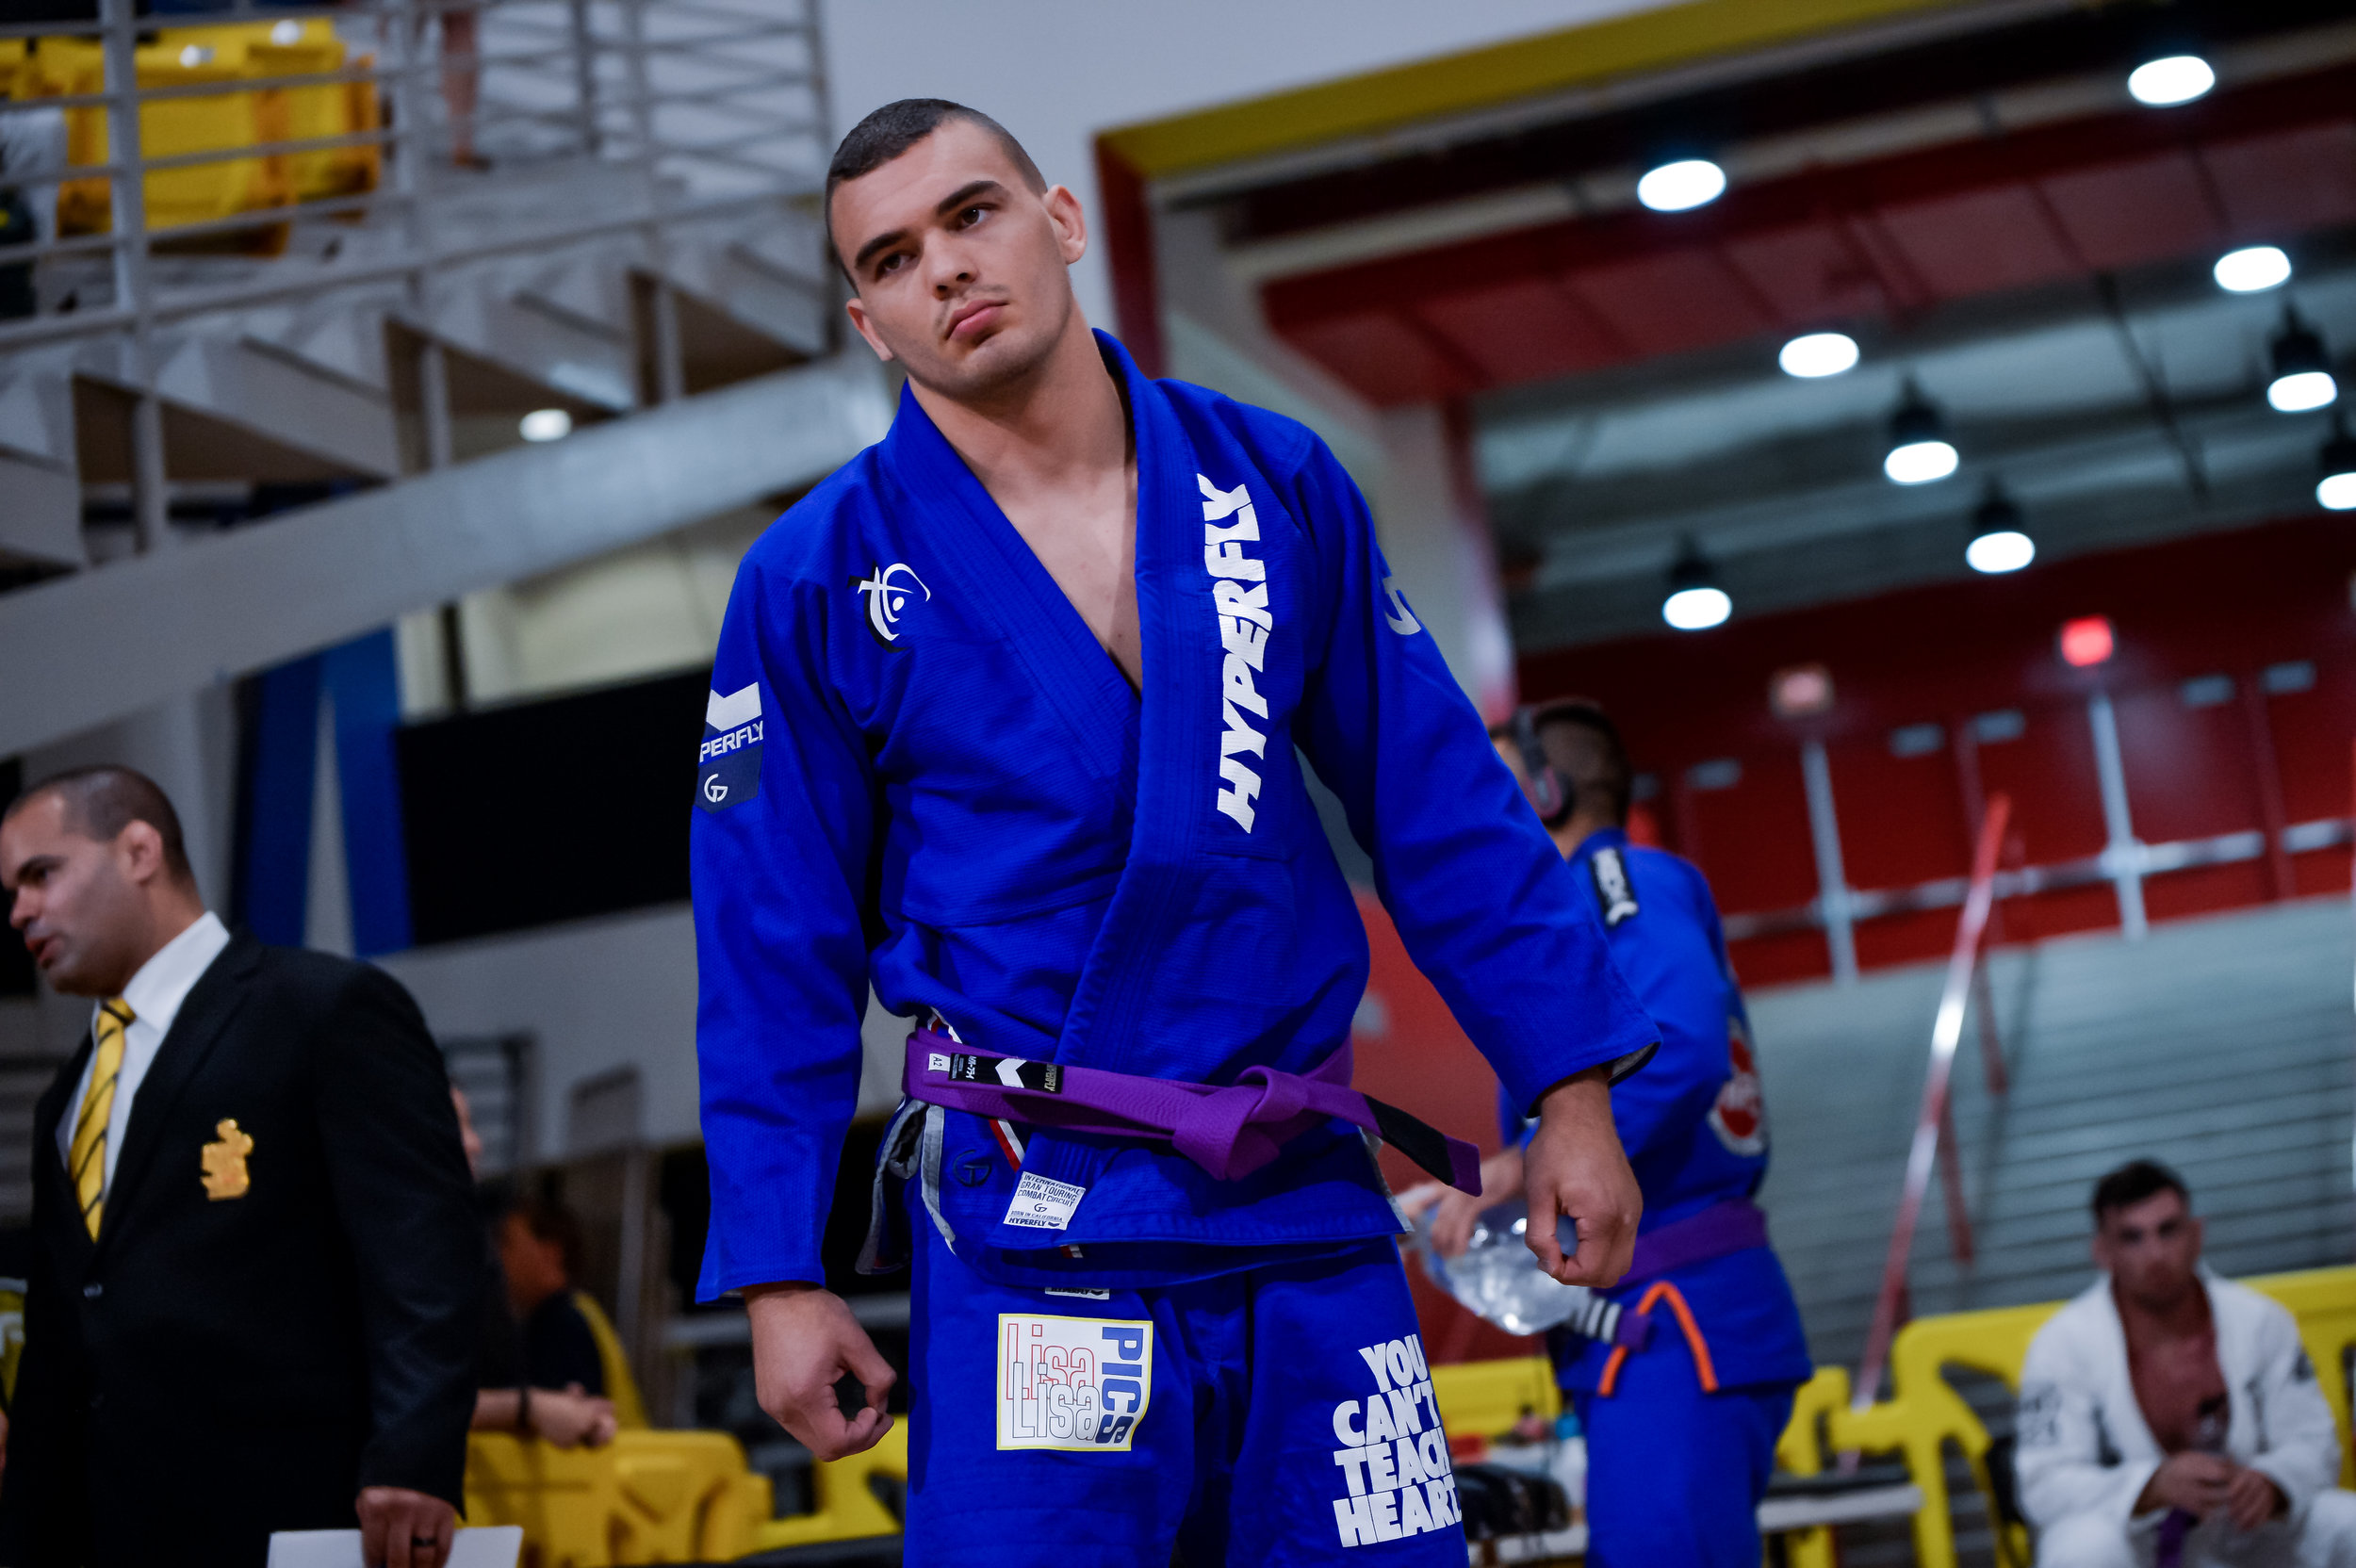 Darin Conner DeAngelis is the 2017/18 #1 ranked Heavy Weight Purple Belt in the IBJJF.  And if you noticed, he is wearing a really cool patch haha Thank you DC!